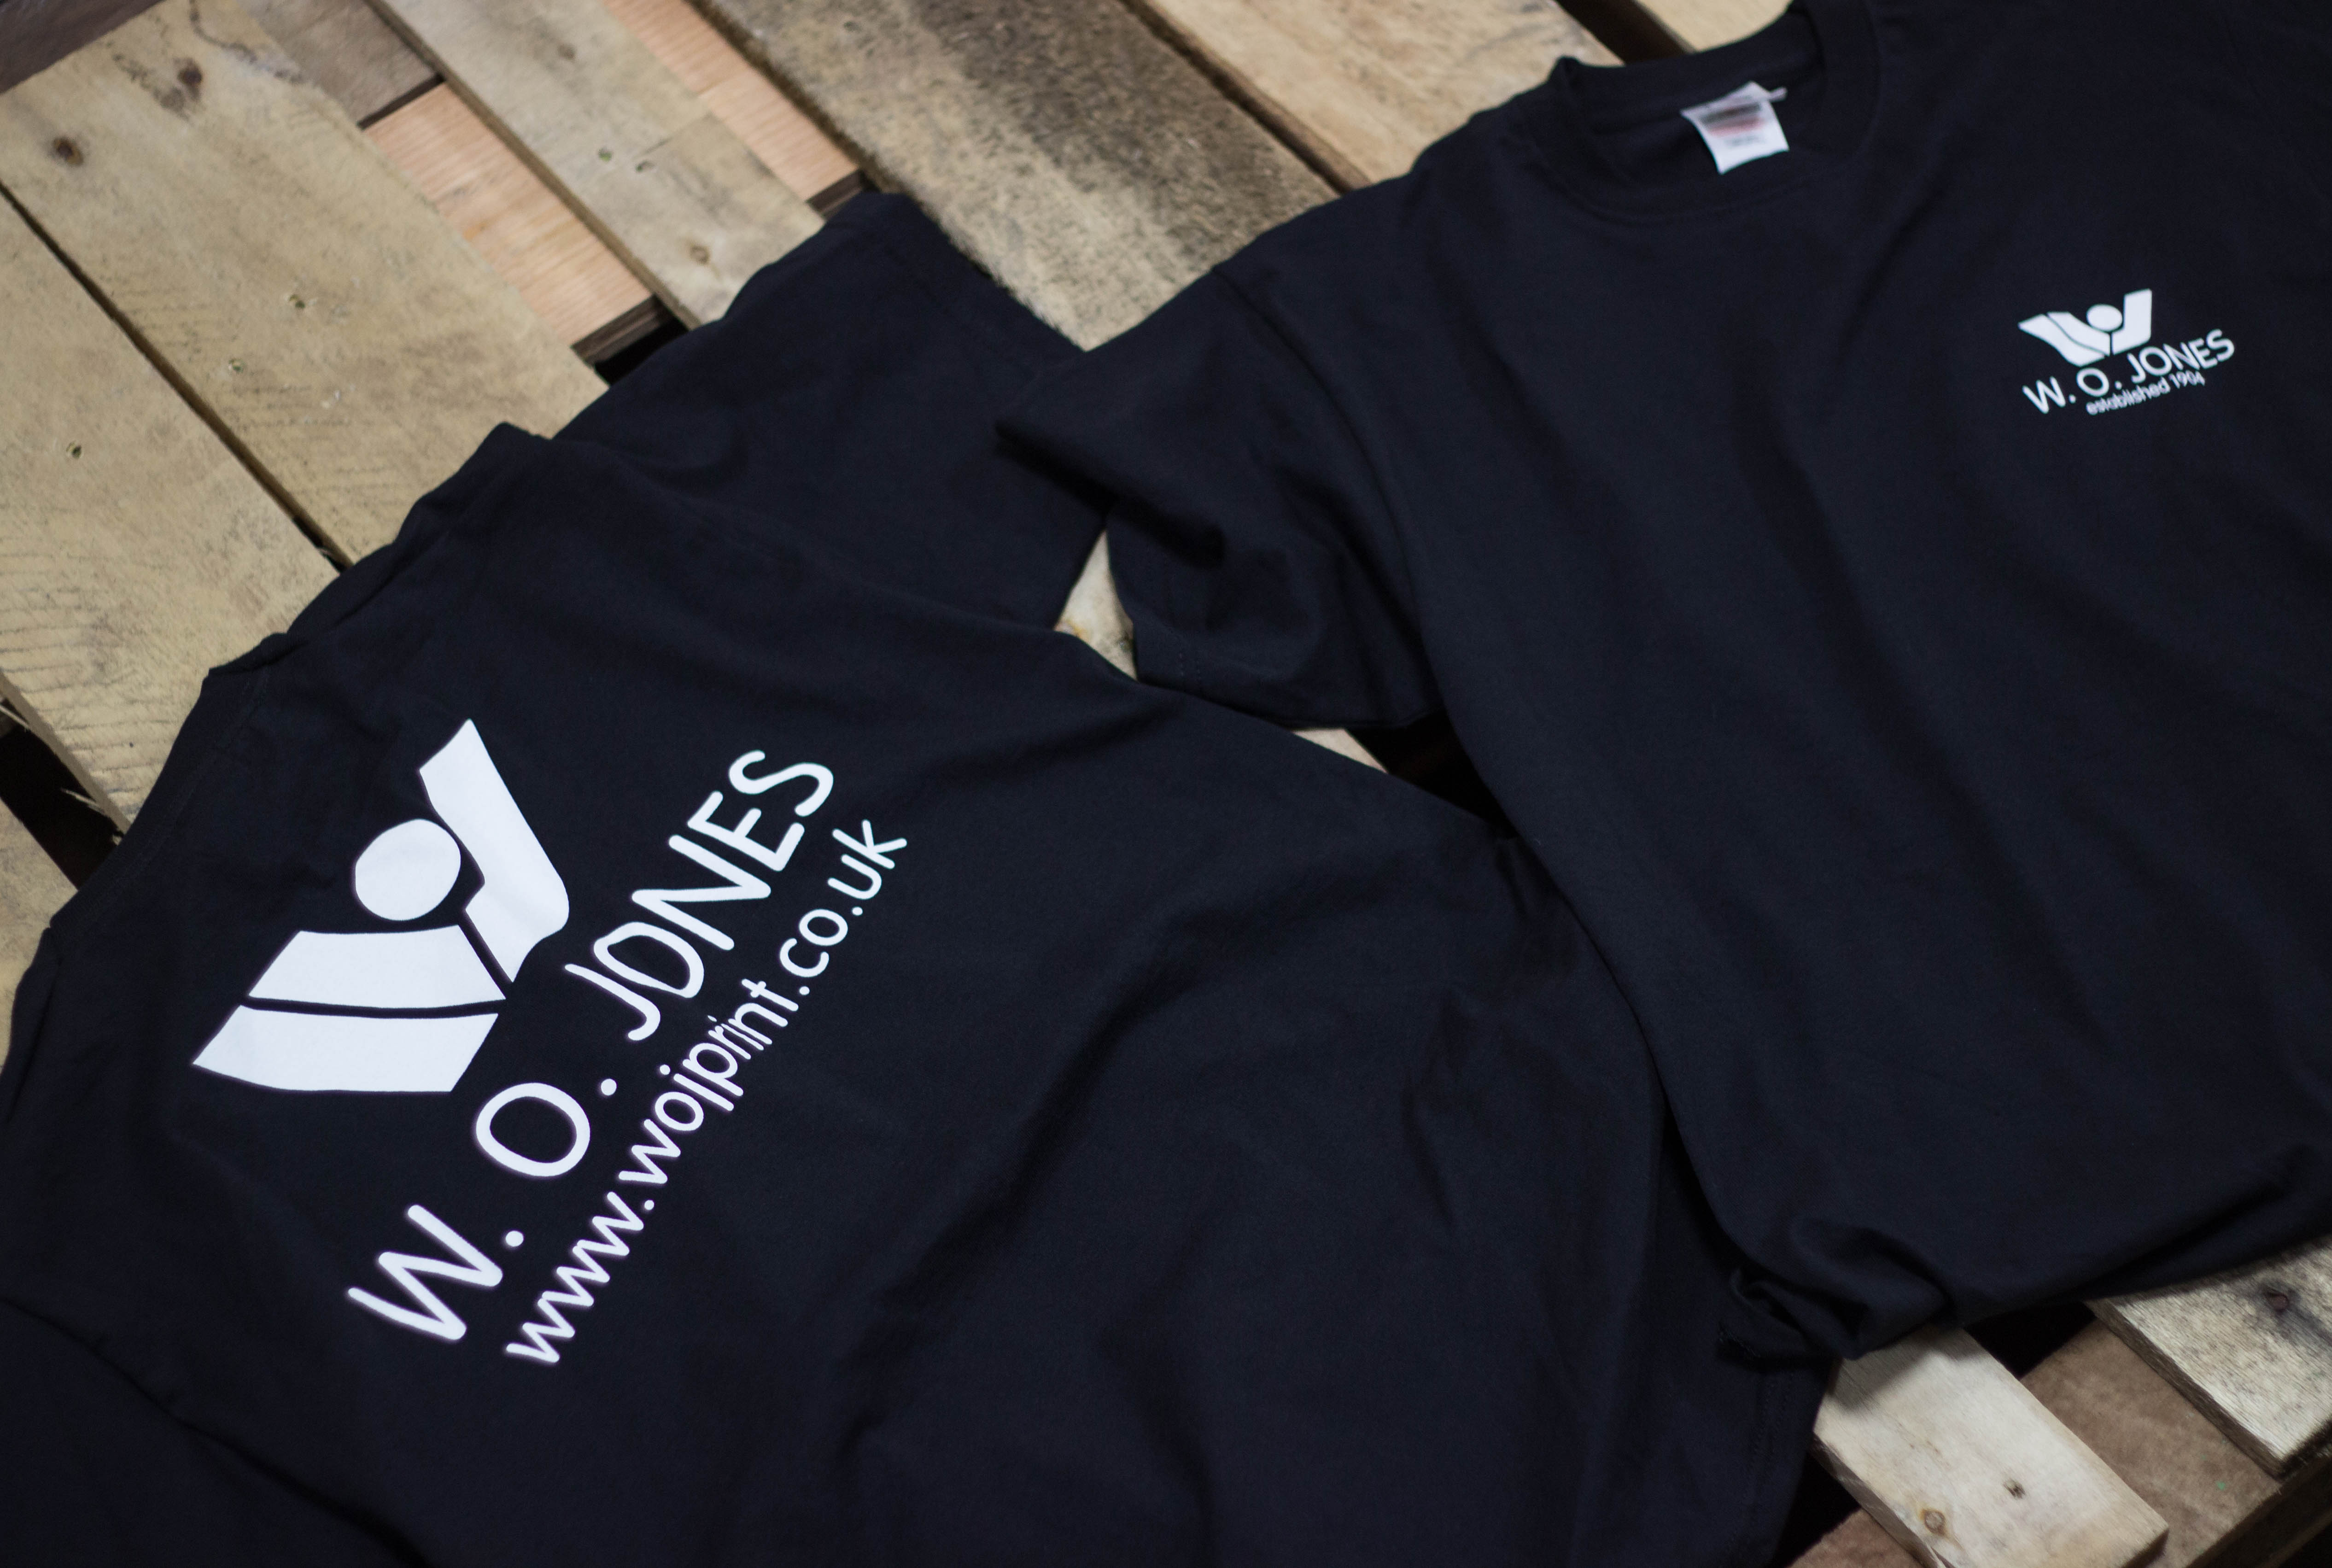 t shirt printing, merch printing, screen printed clothing, w.o. jones printers, north wales, south wales, swansea, wales, printed clothing, screen printing, screen printing wales, back flood press